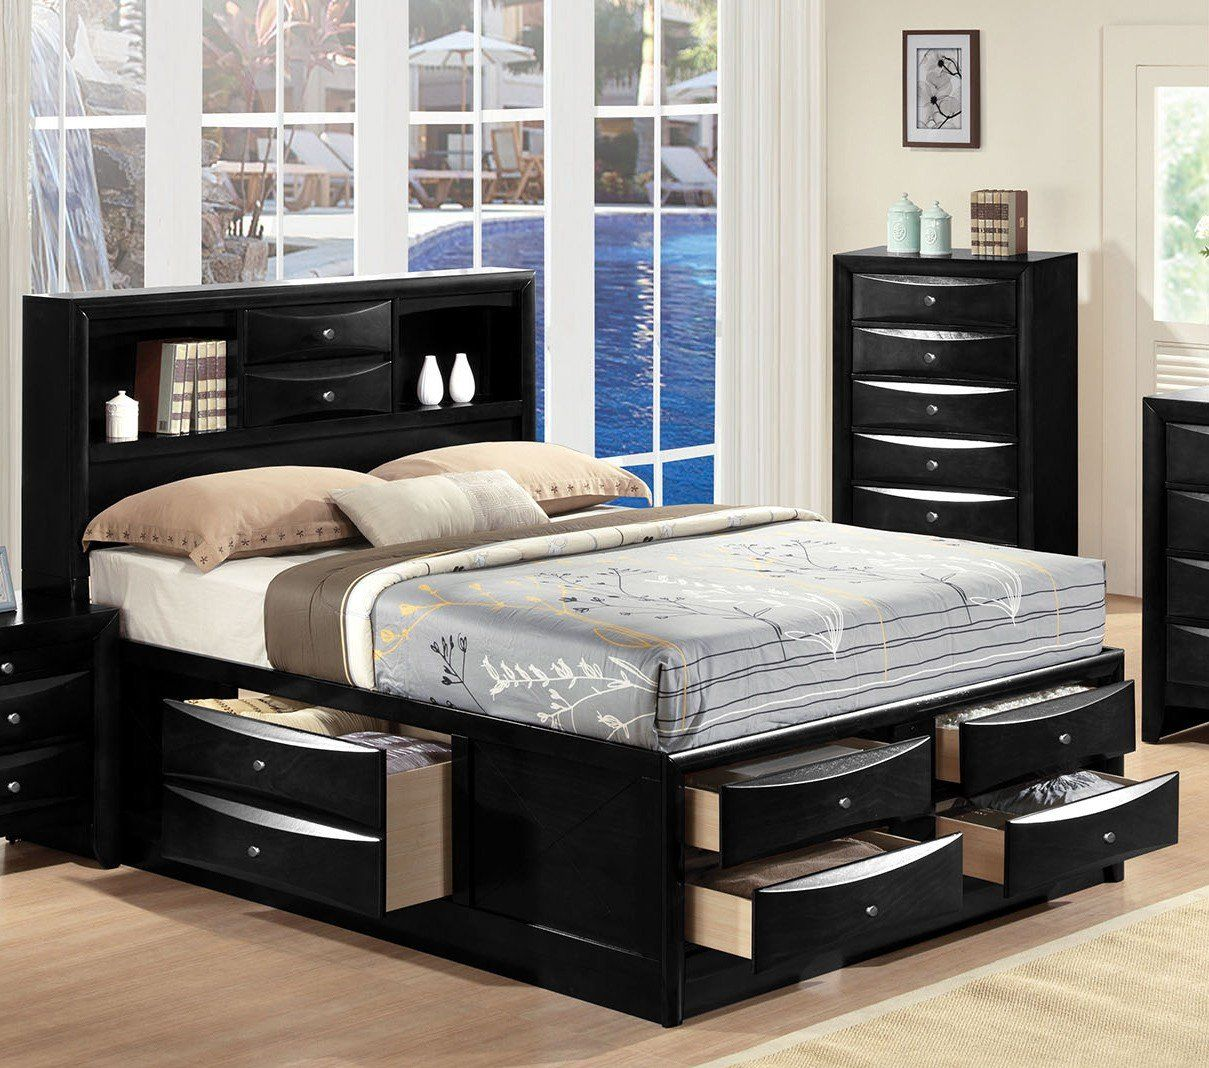 Acme 21606ek Ireland Black King Storage Bed With Bookcase Drawers King Storage Bed King Bedroom Sets Bedroom Set